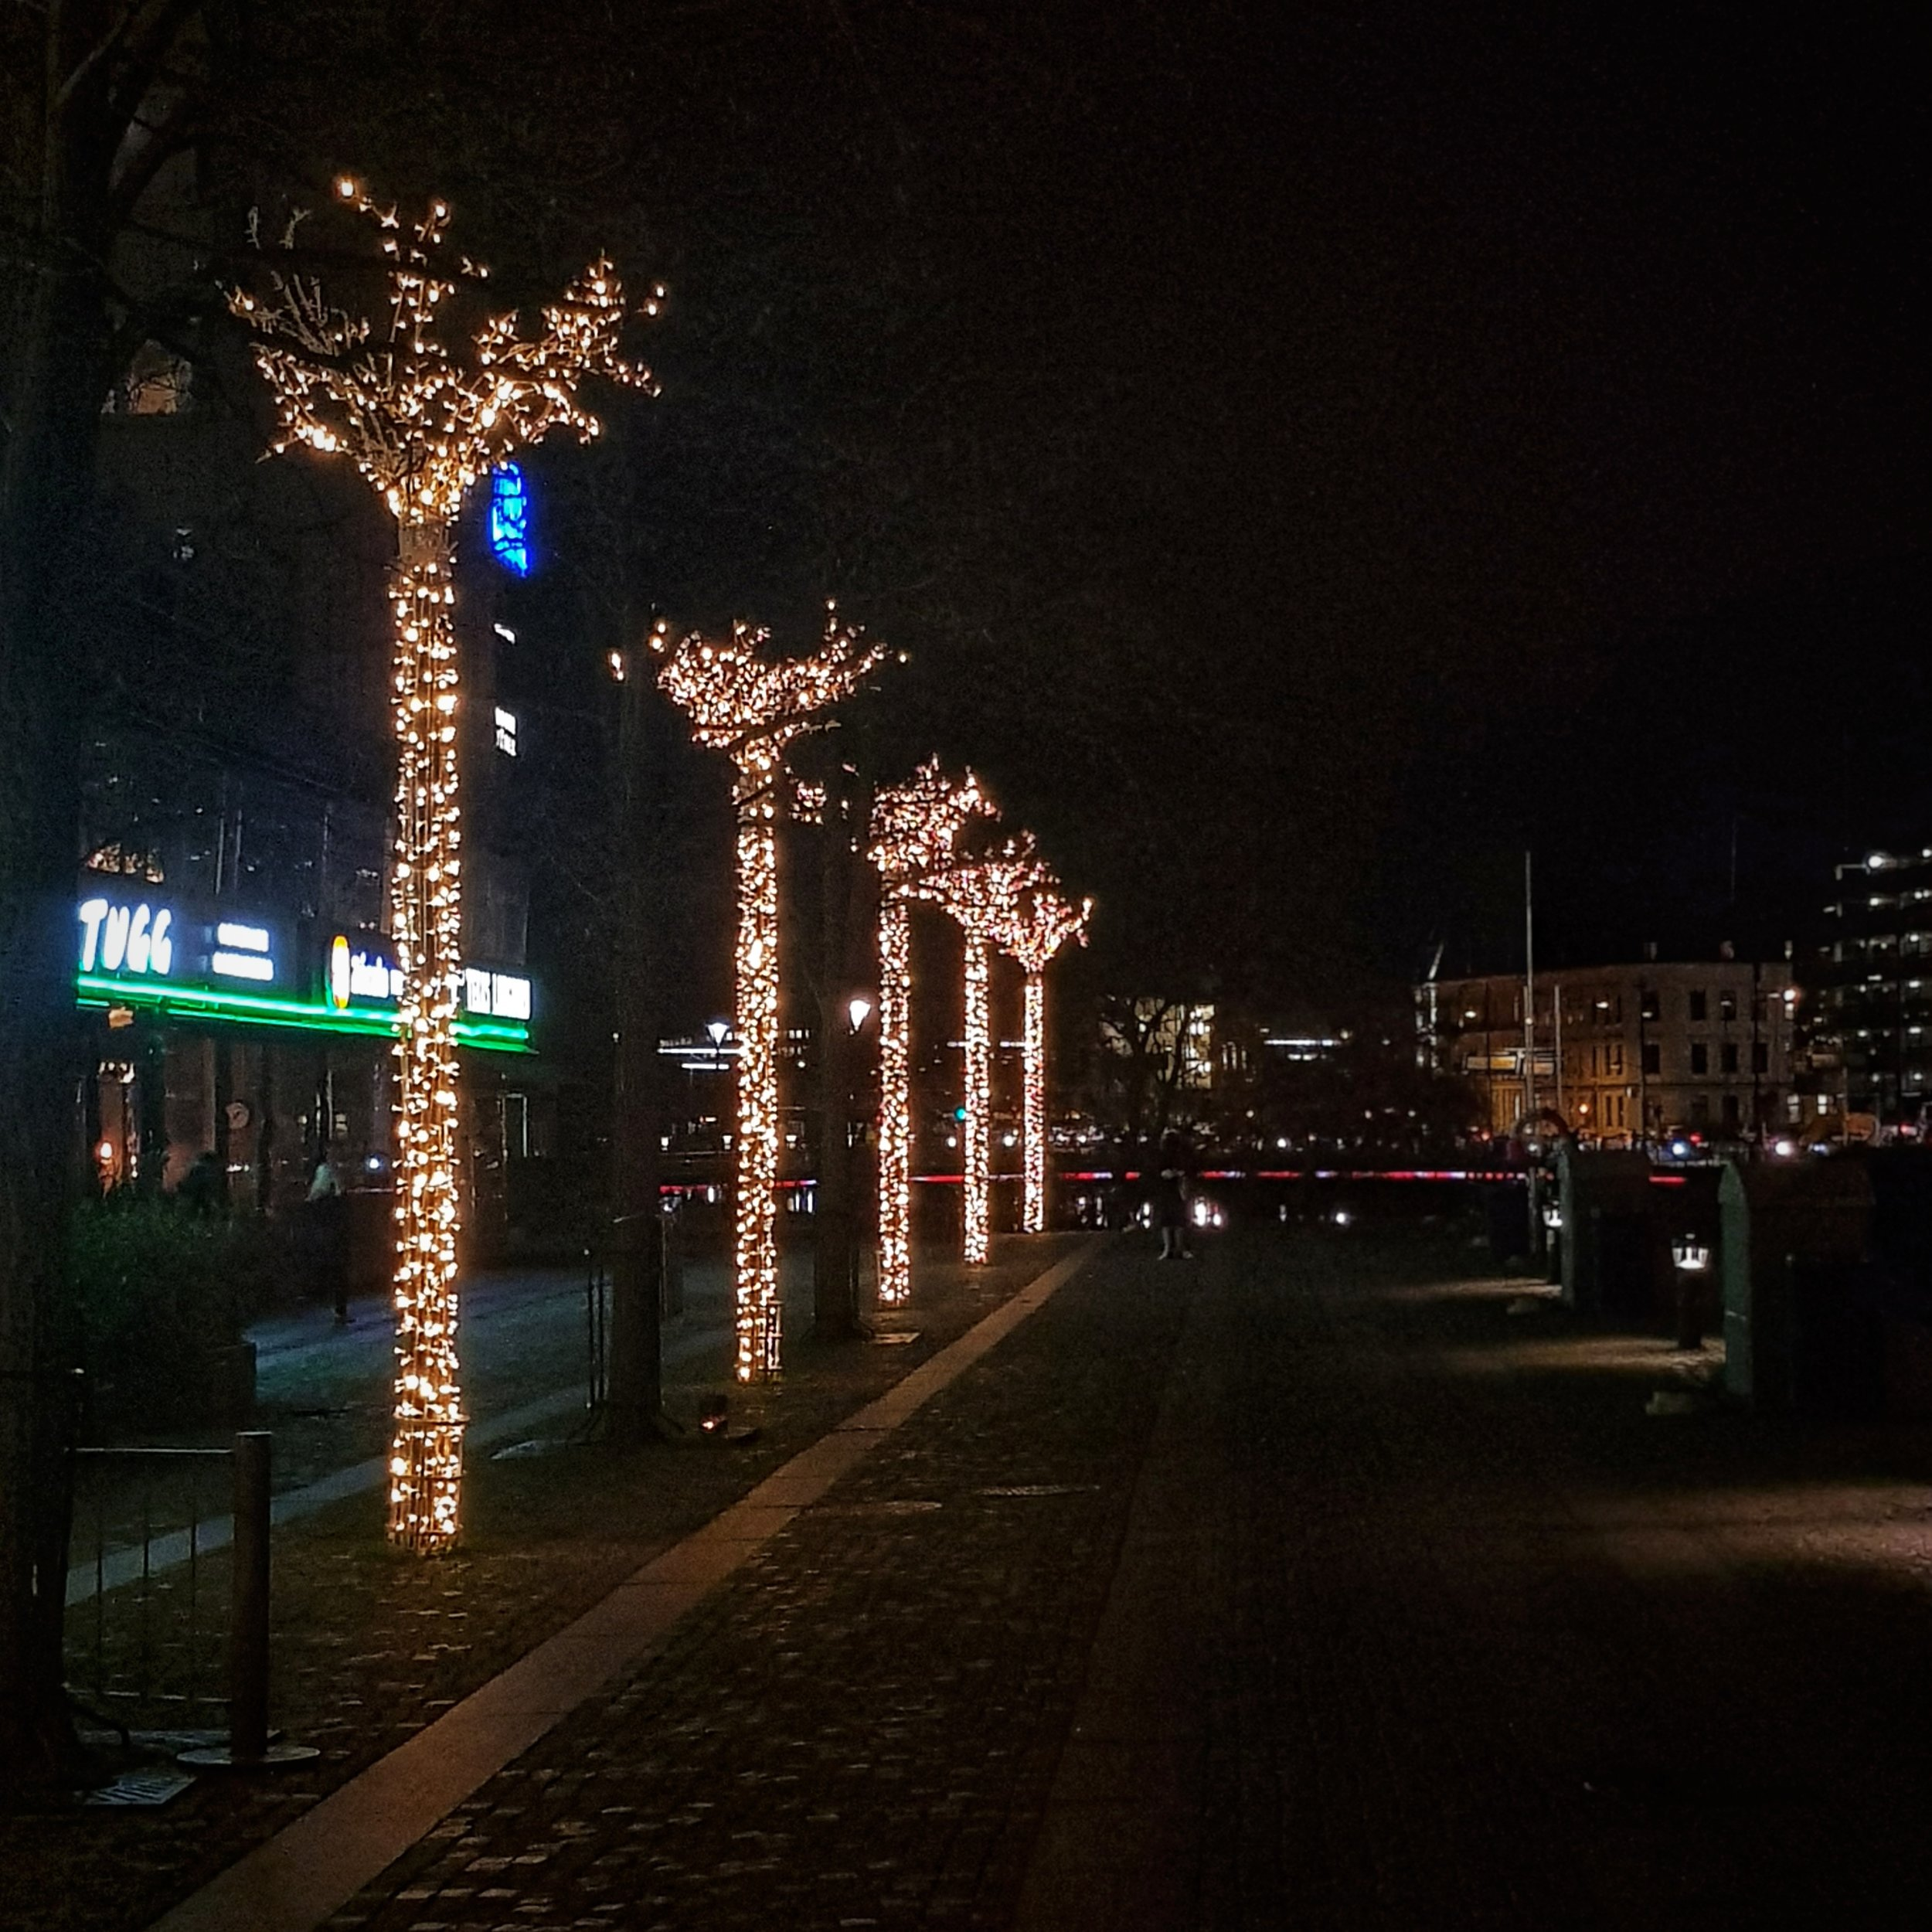 Day 348 - December 14: Row of Lights